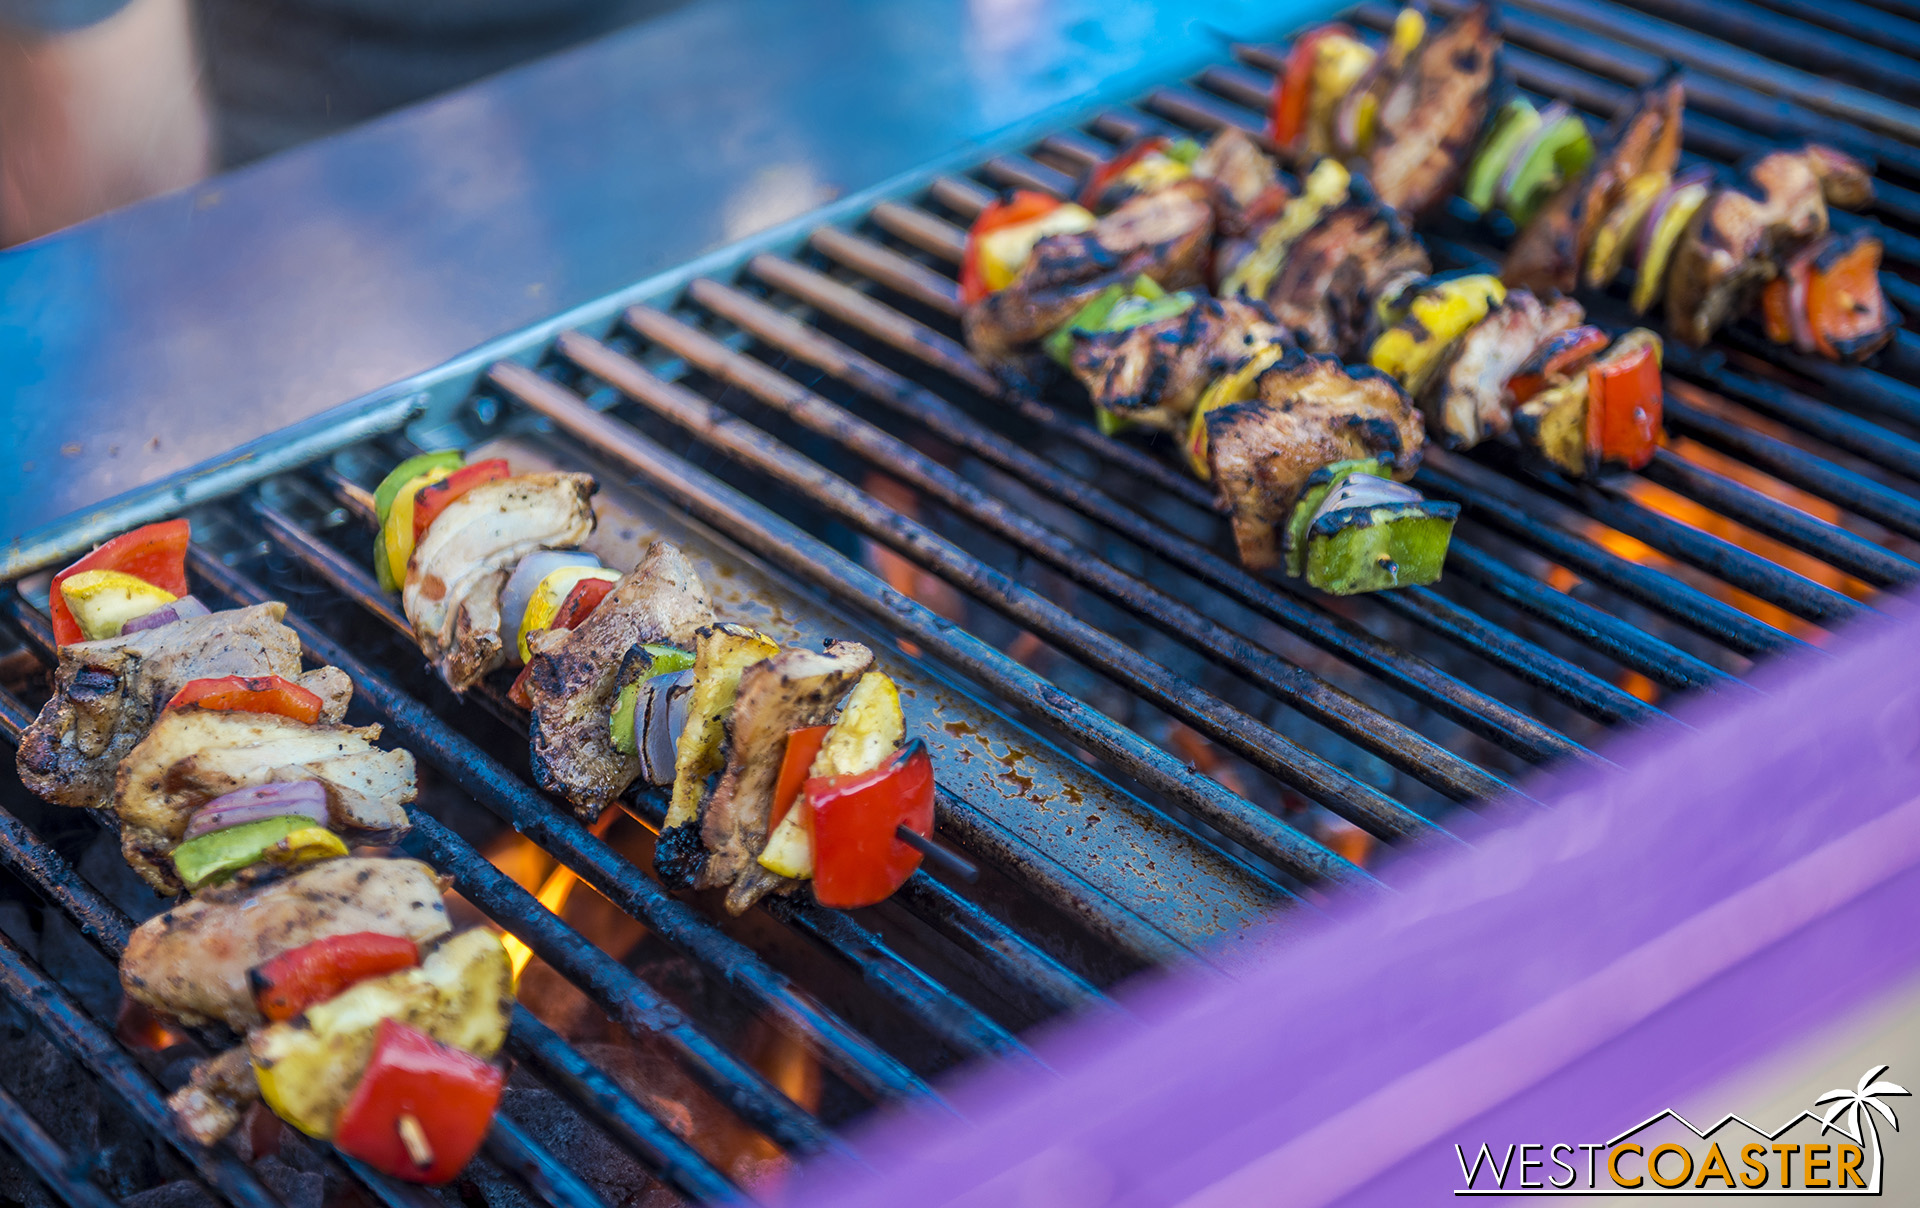 The skewers were pretty awesome.